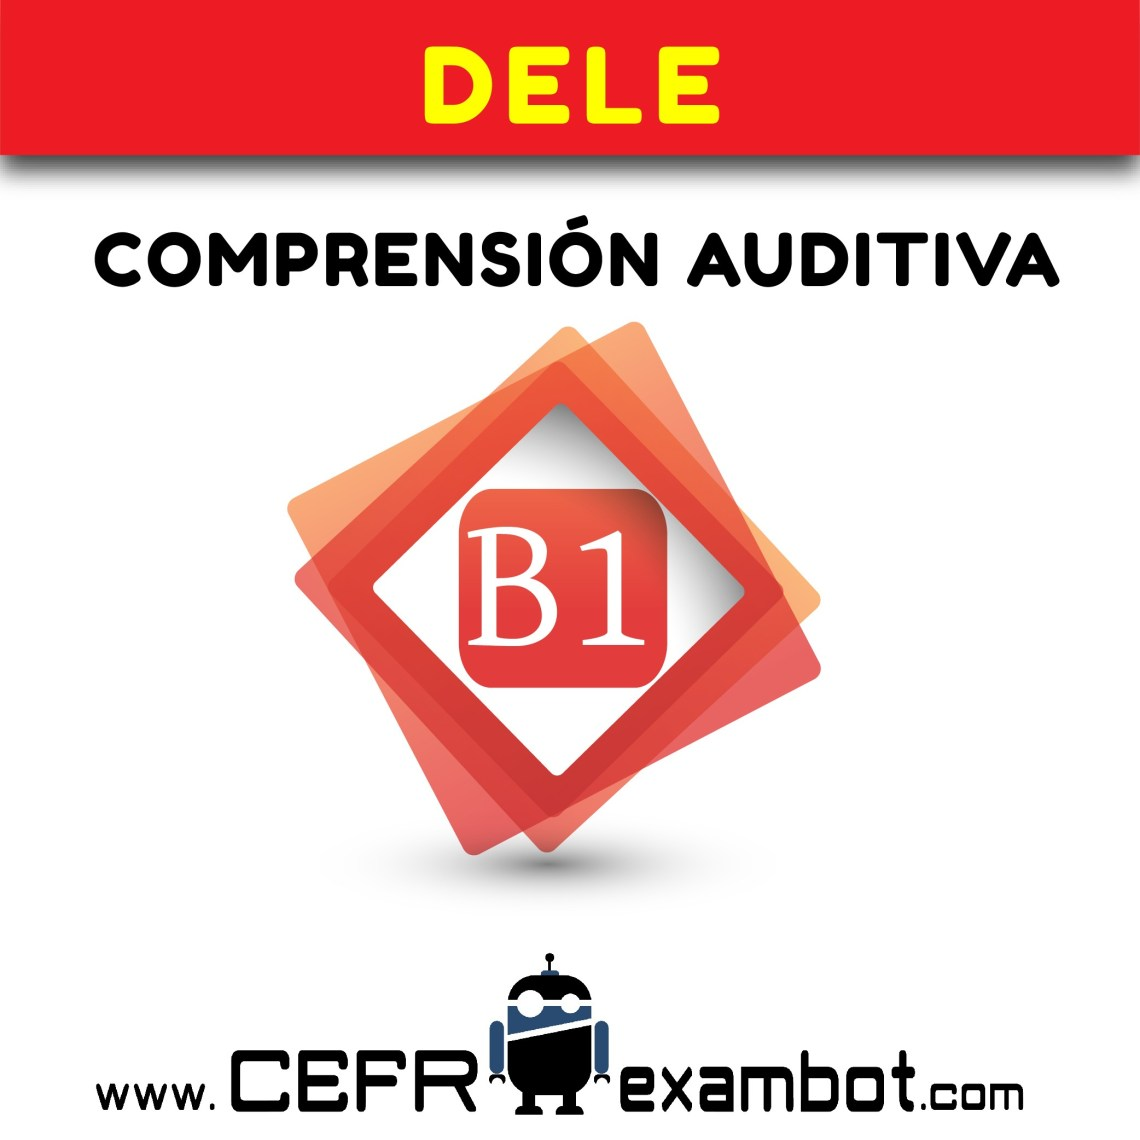 DELE B1 Examen Comprension Auditiva www.CEFRexambot.com